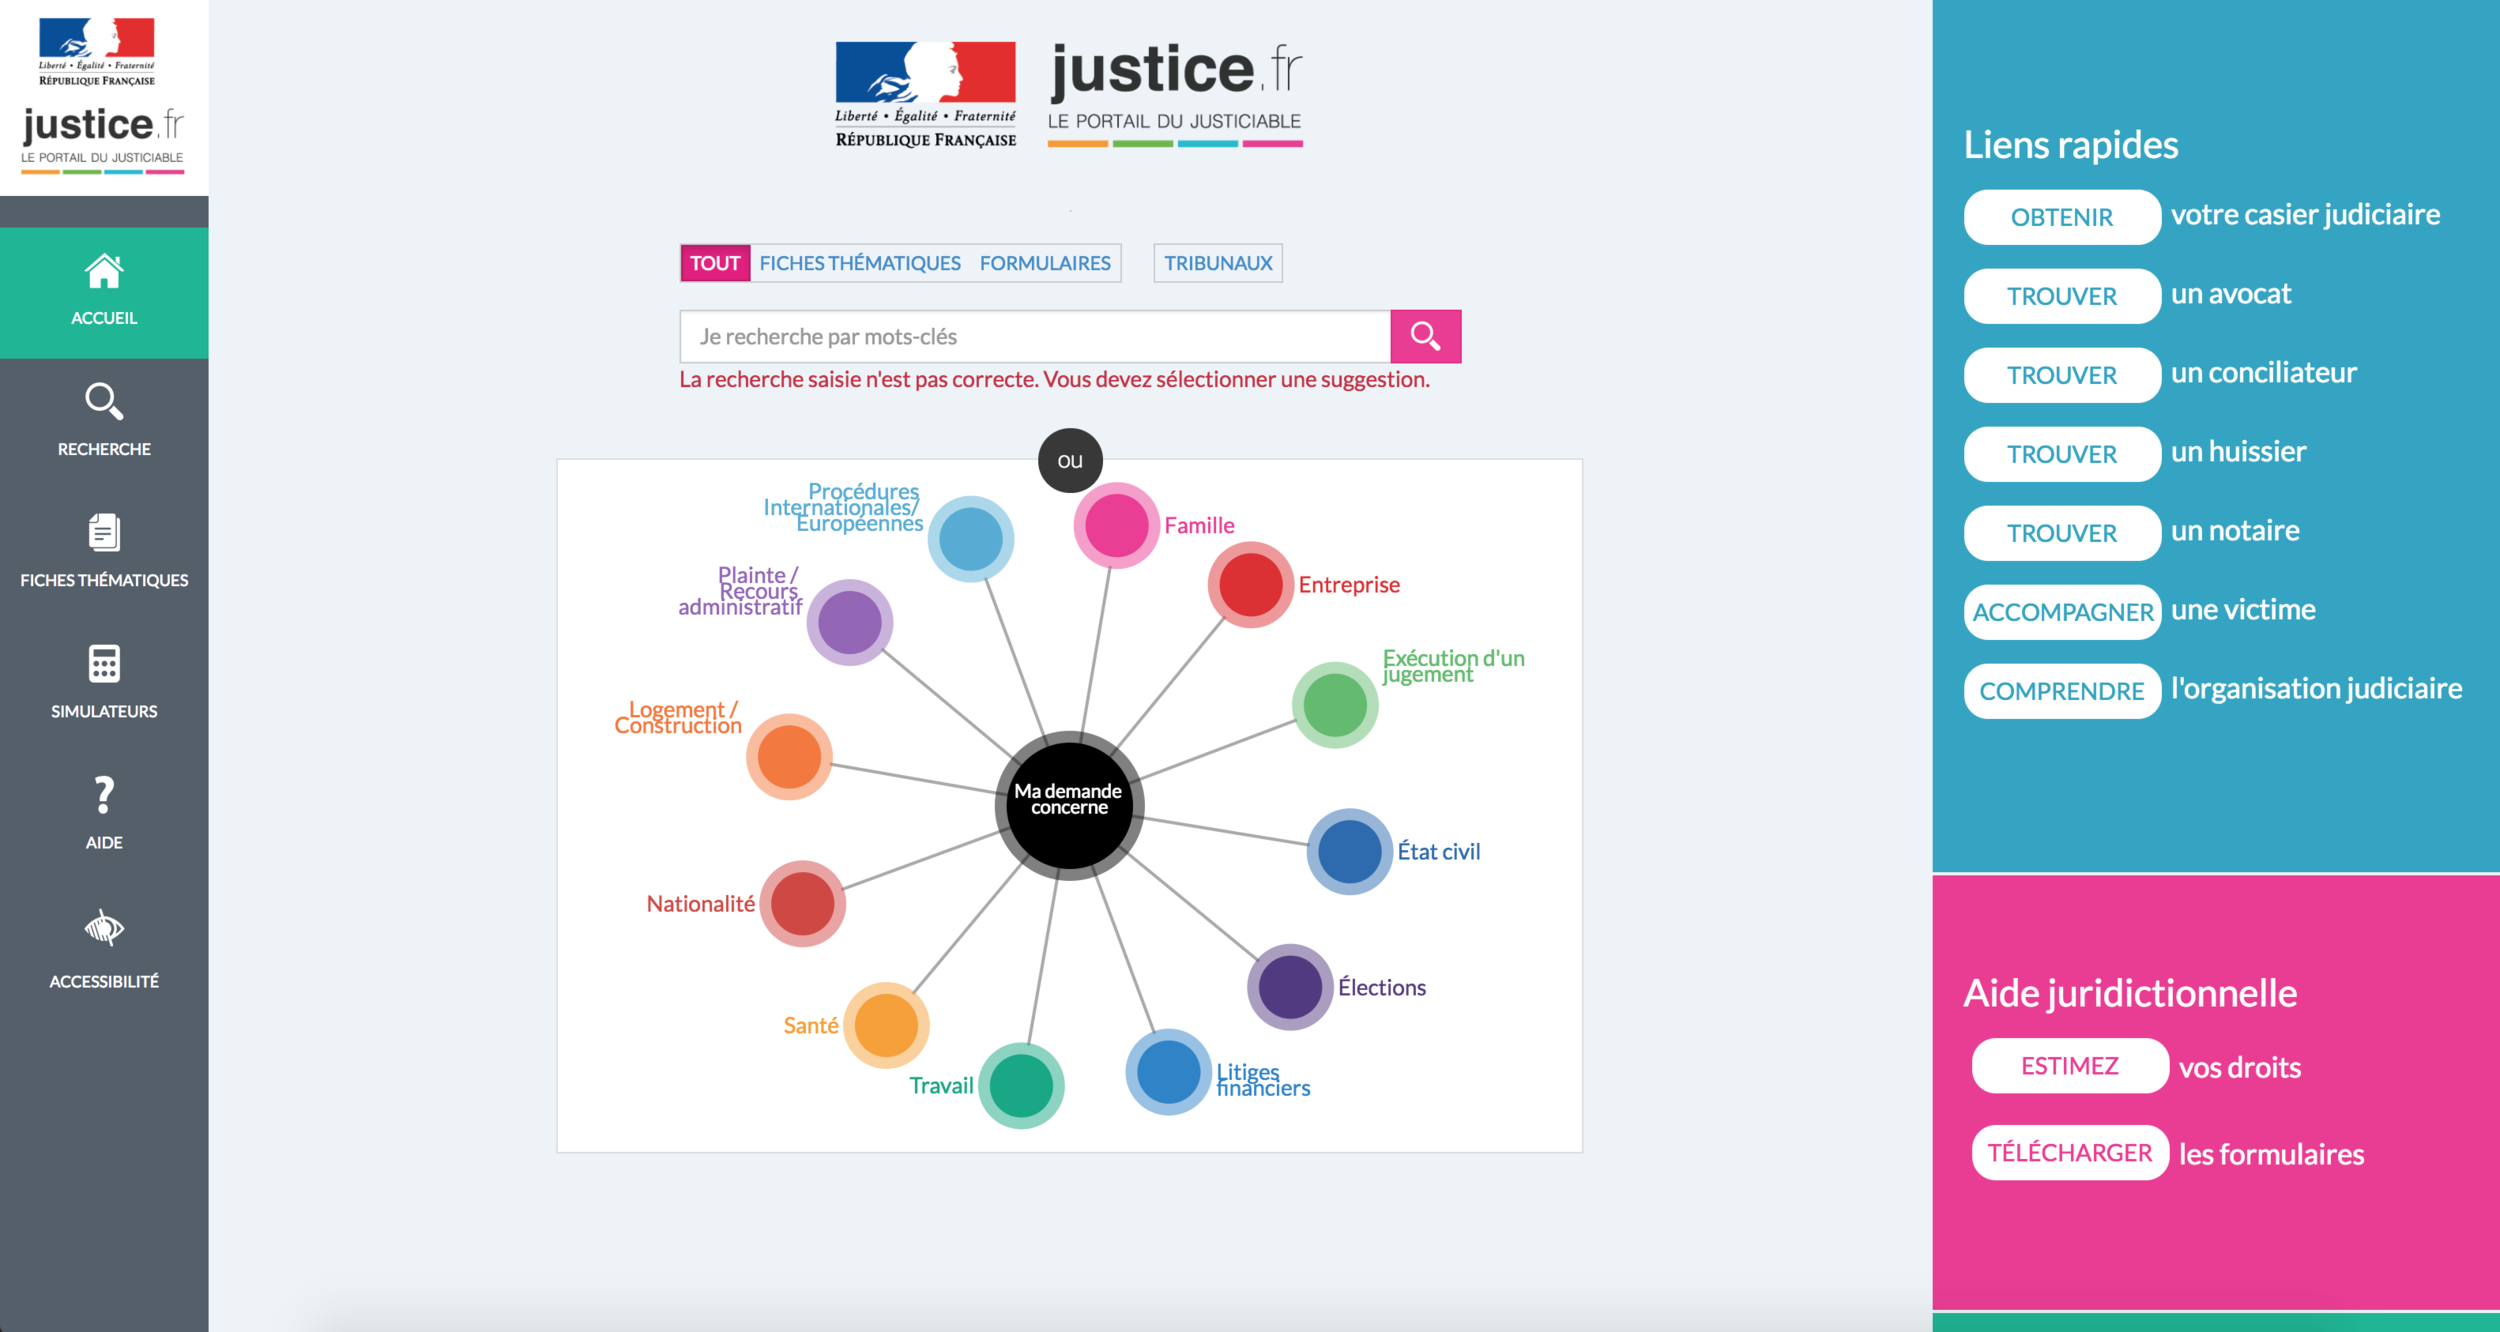 The actual website of www.justice.fr